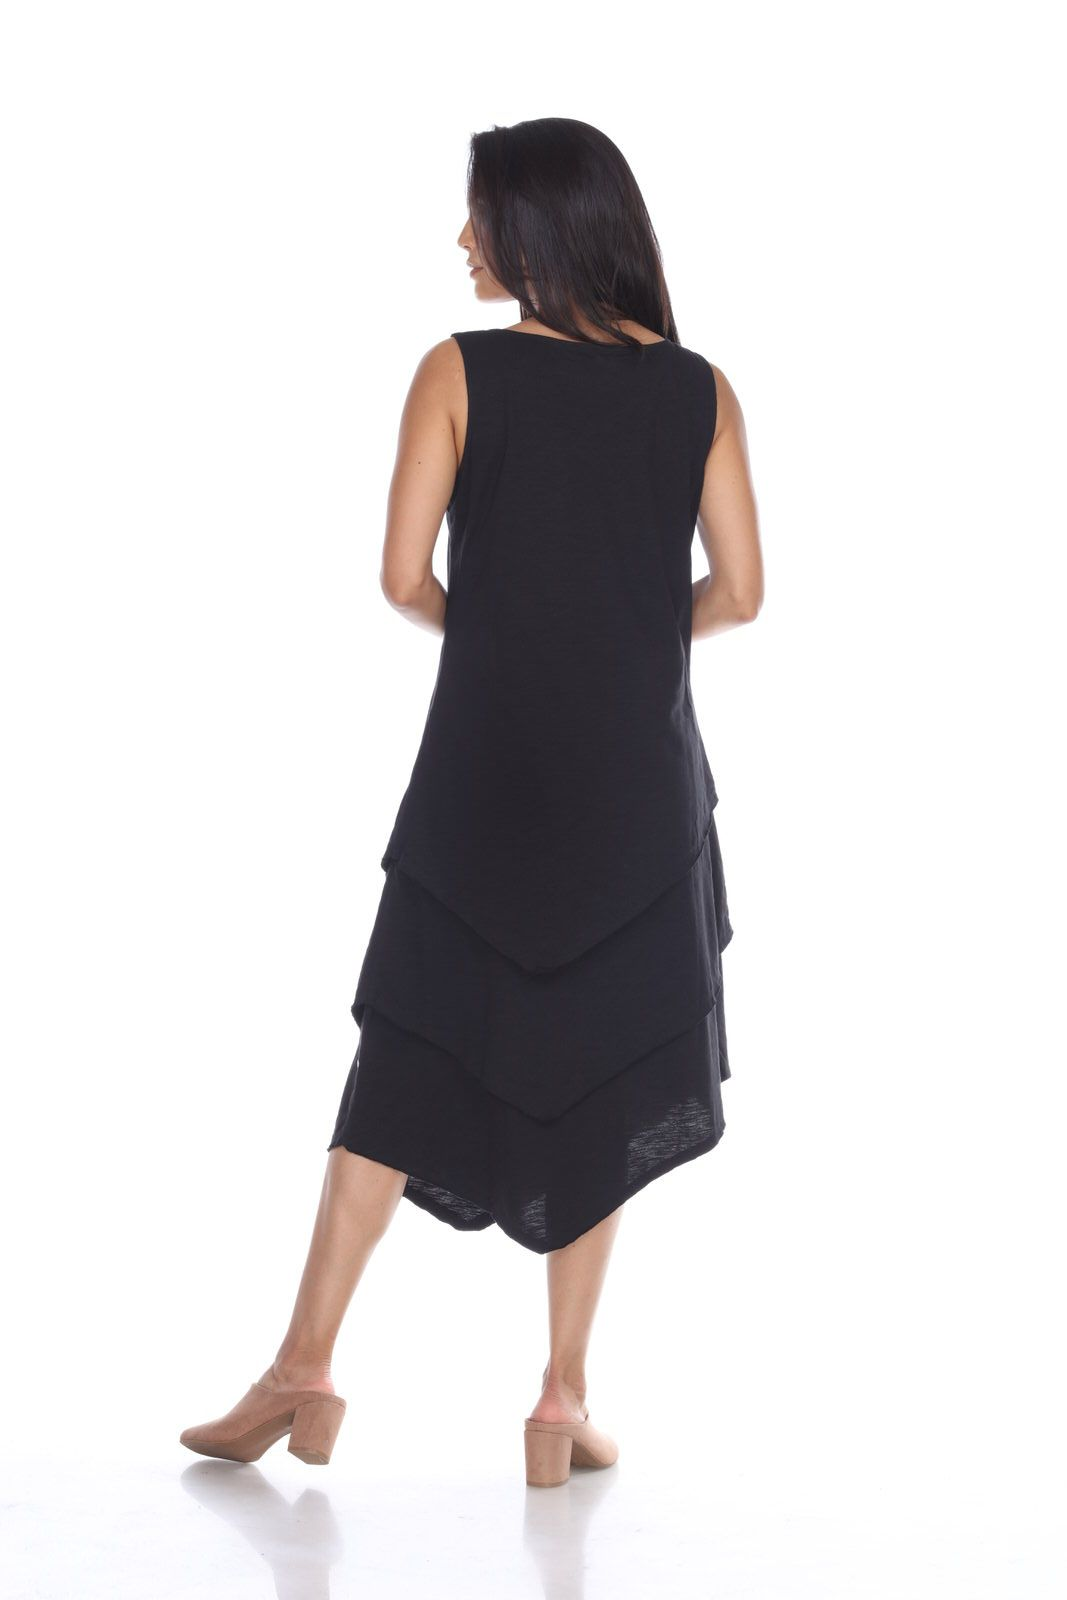 In Your Element Dress - Black